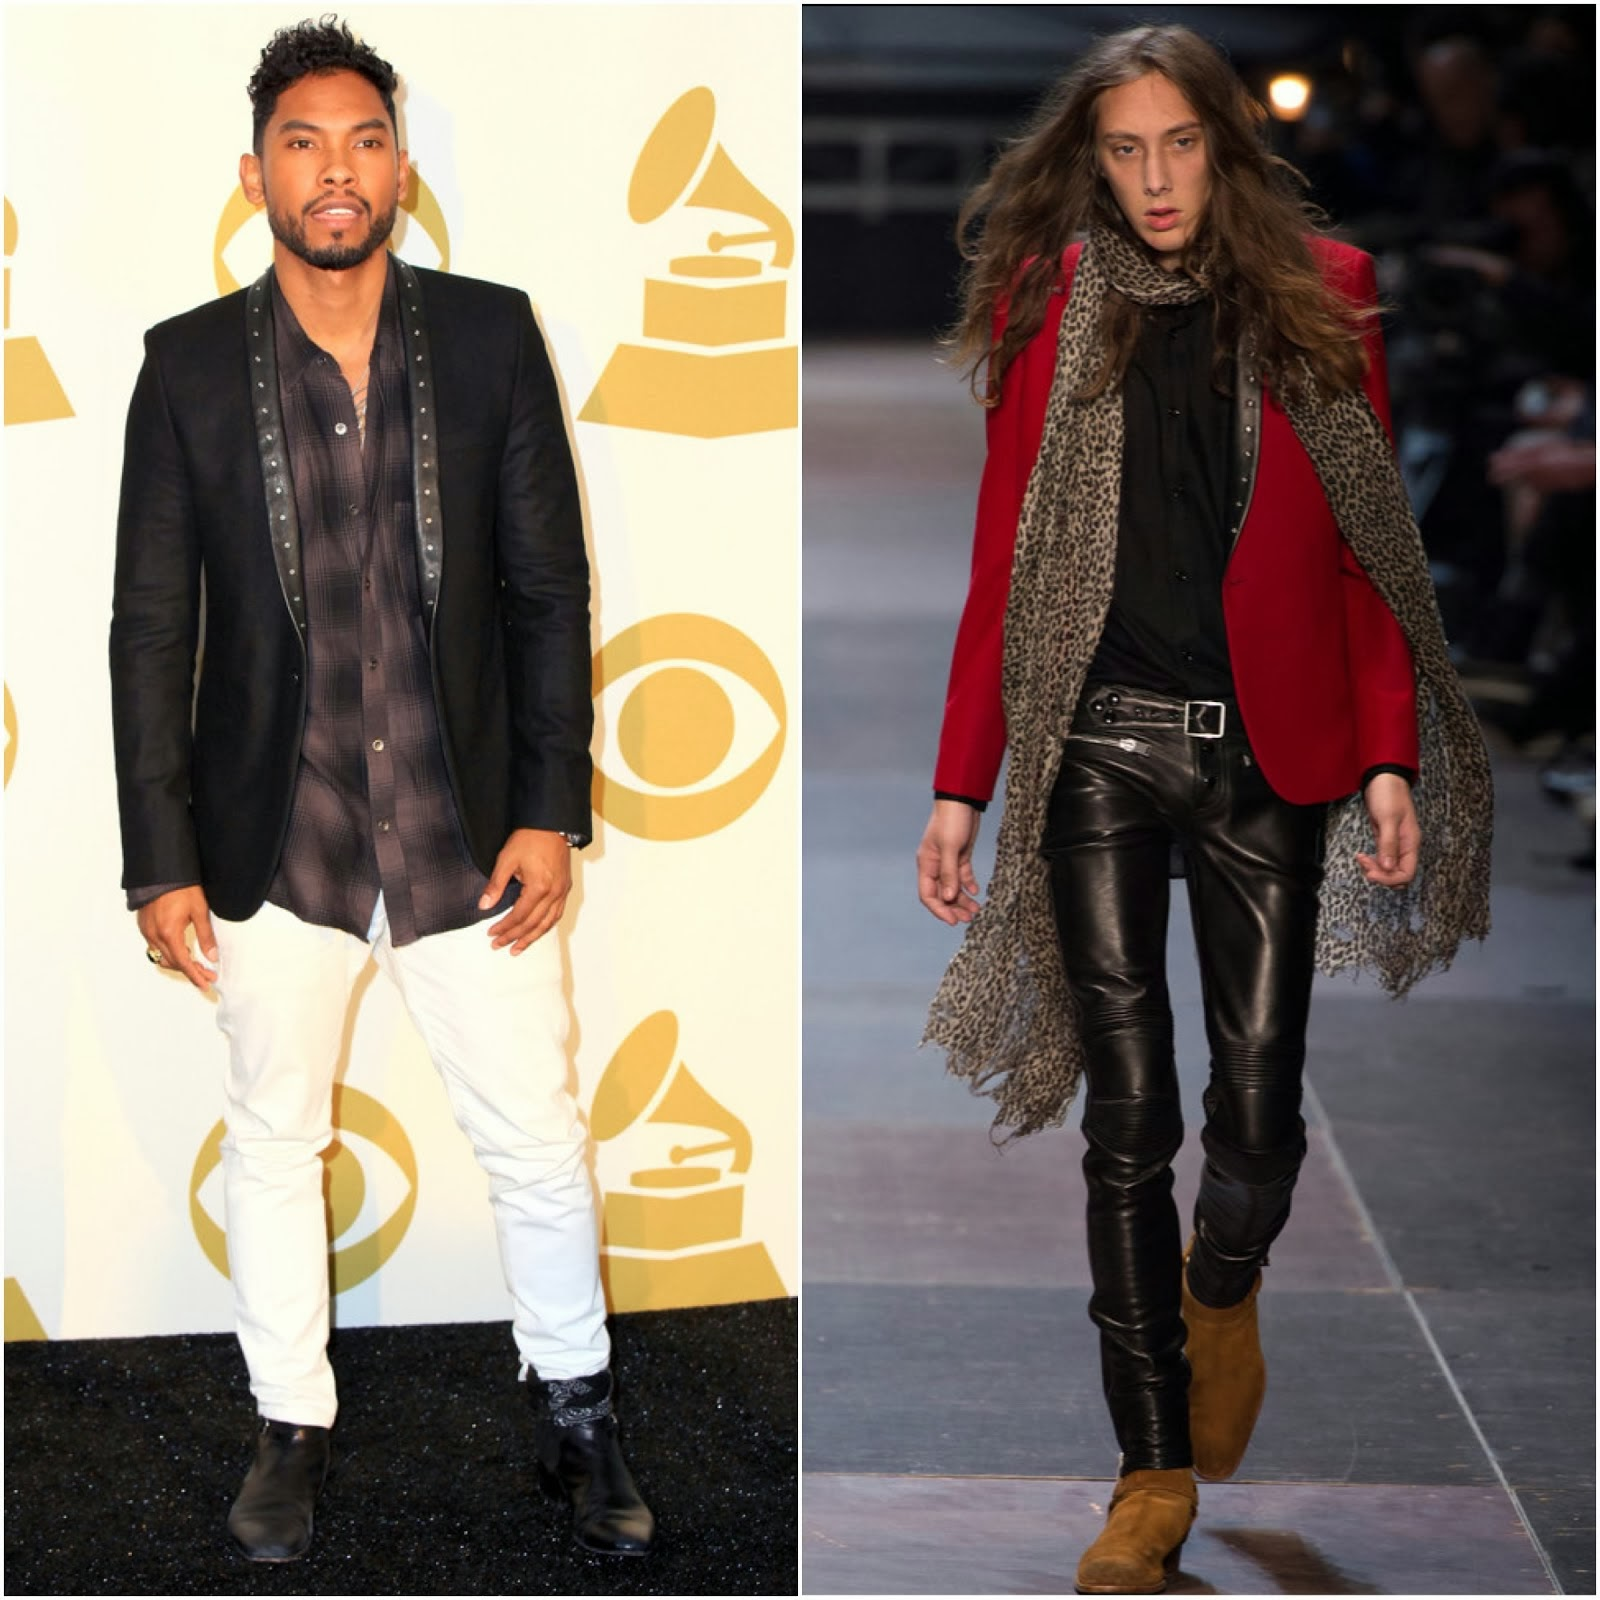 Miguel in Saint Laurent studded leather lapel jacket - Grammy Nominations Concert Live